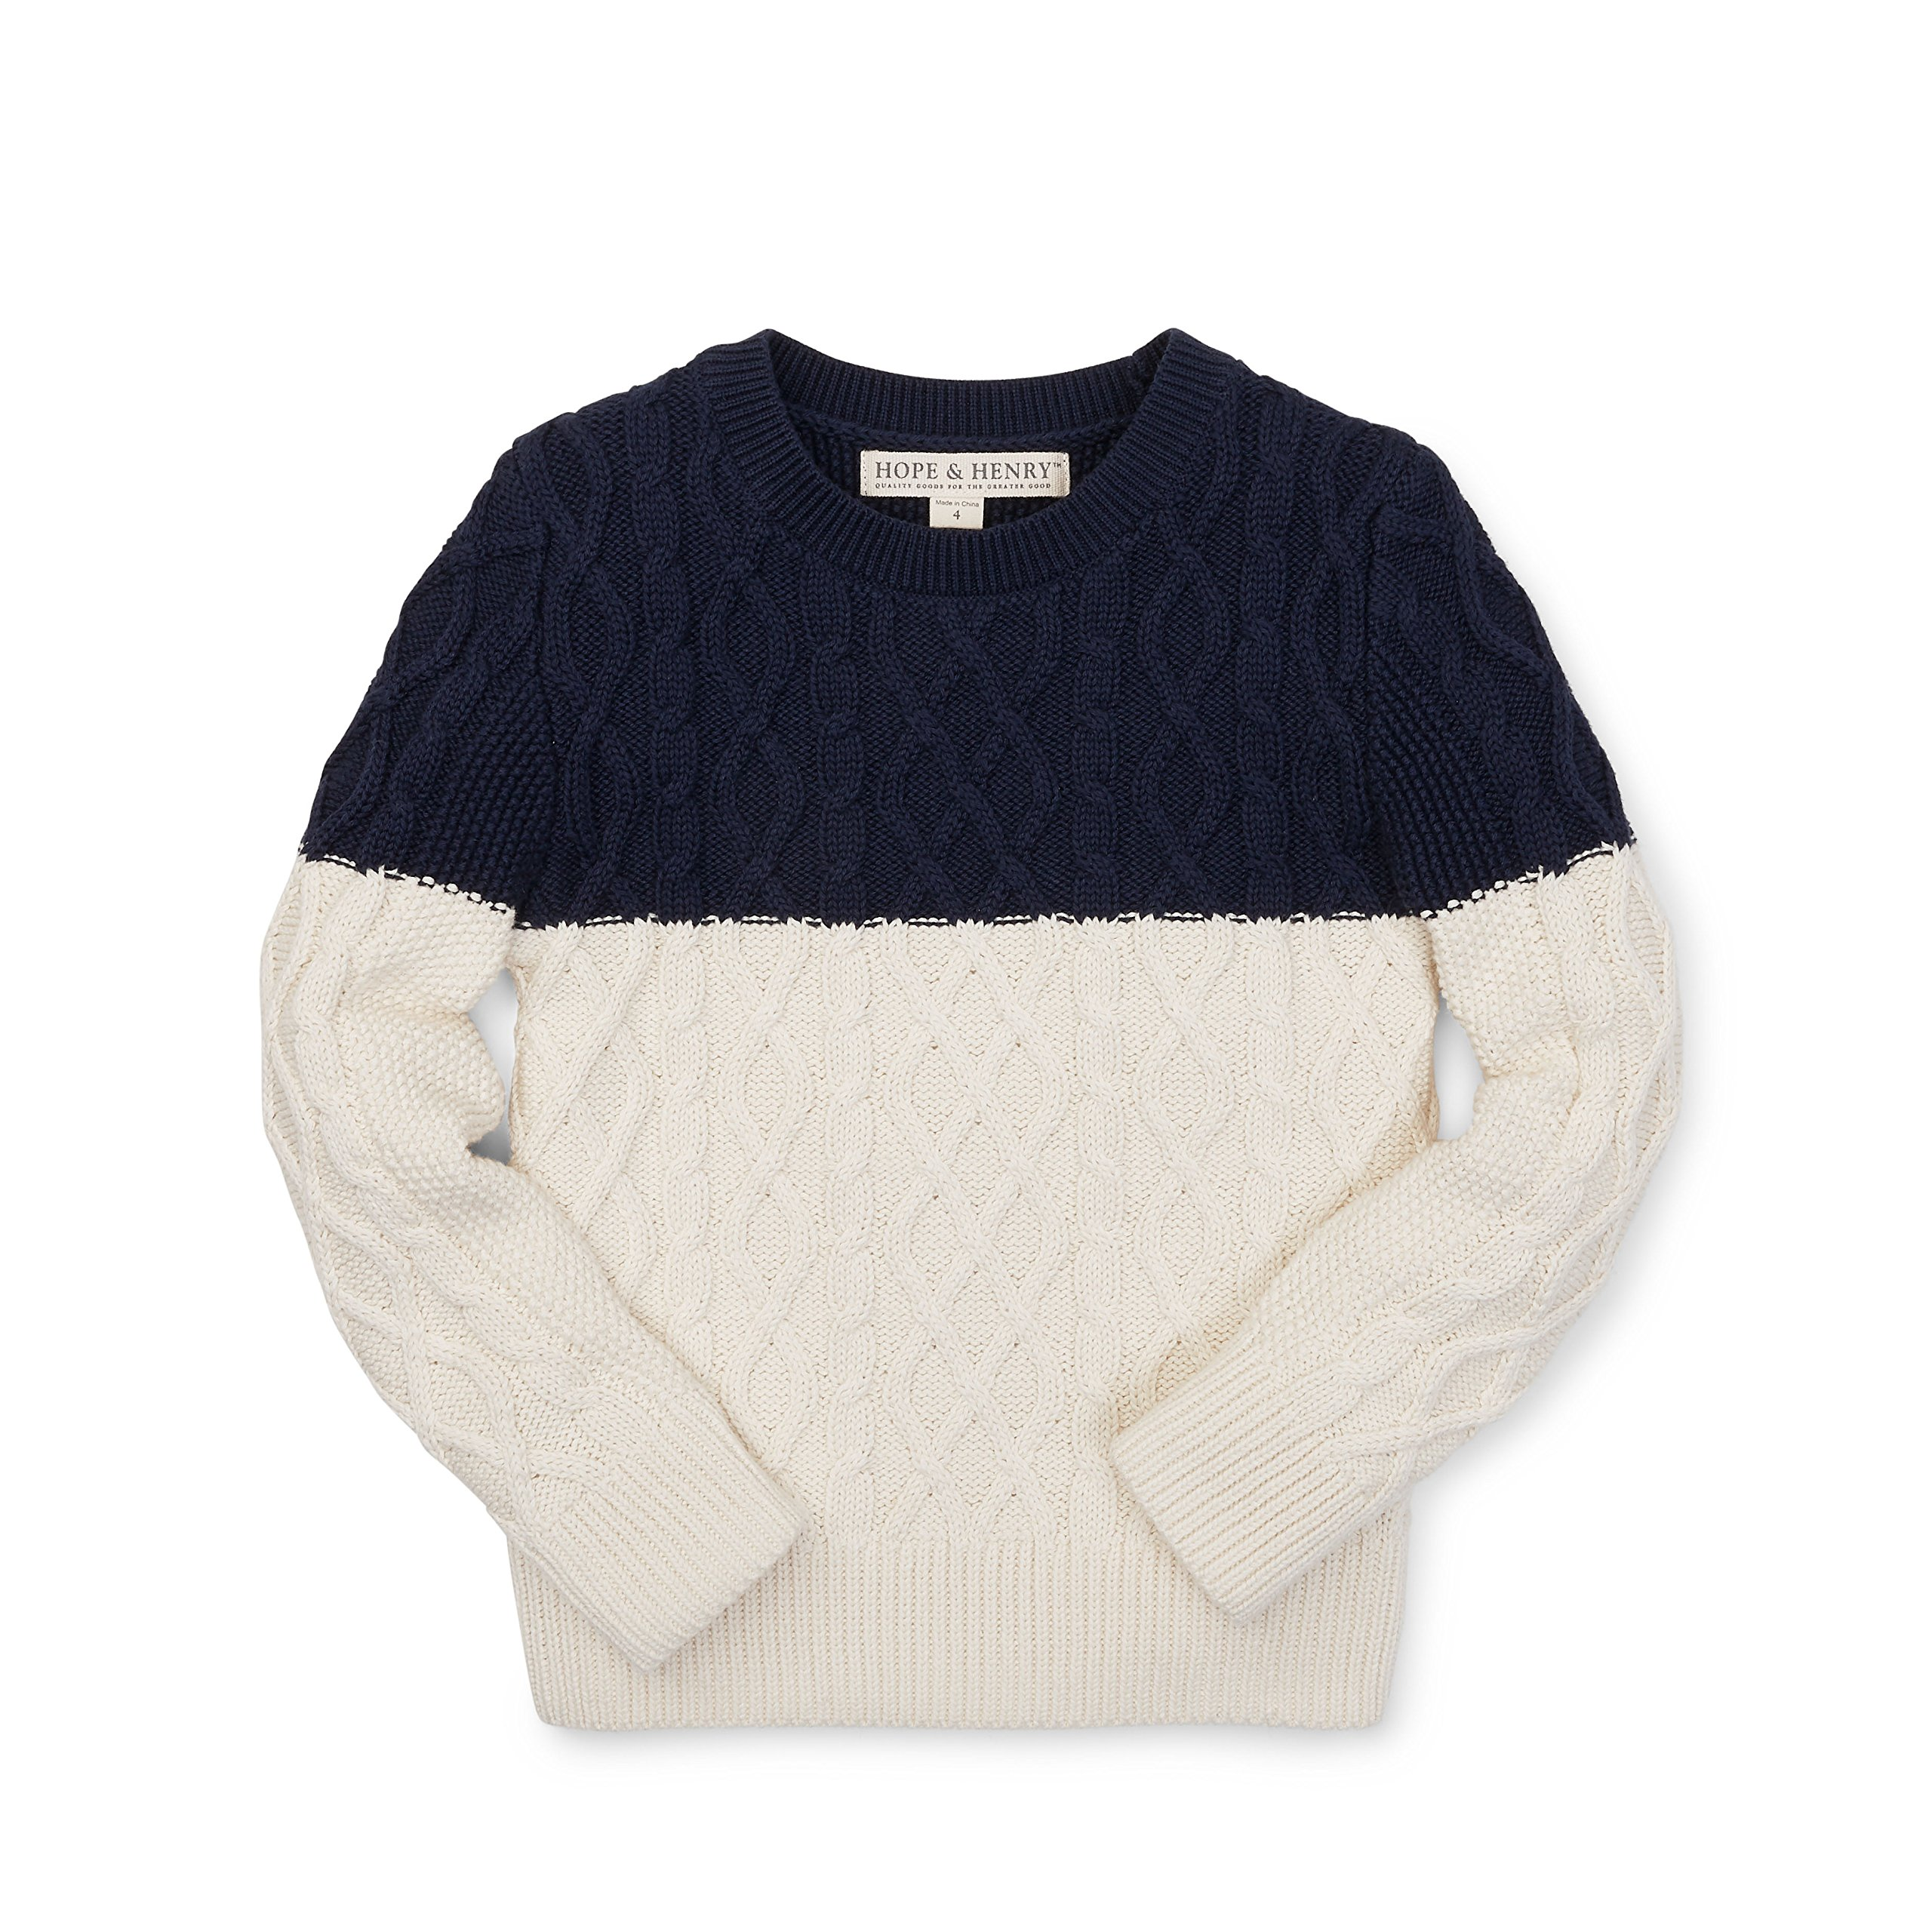 Hope & Henry Boys' Navy/White Colorblock Cable Sweater Made with Organic Cotton